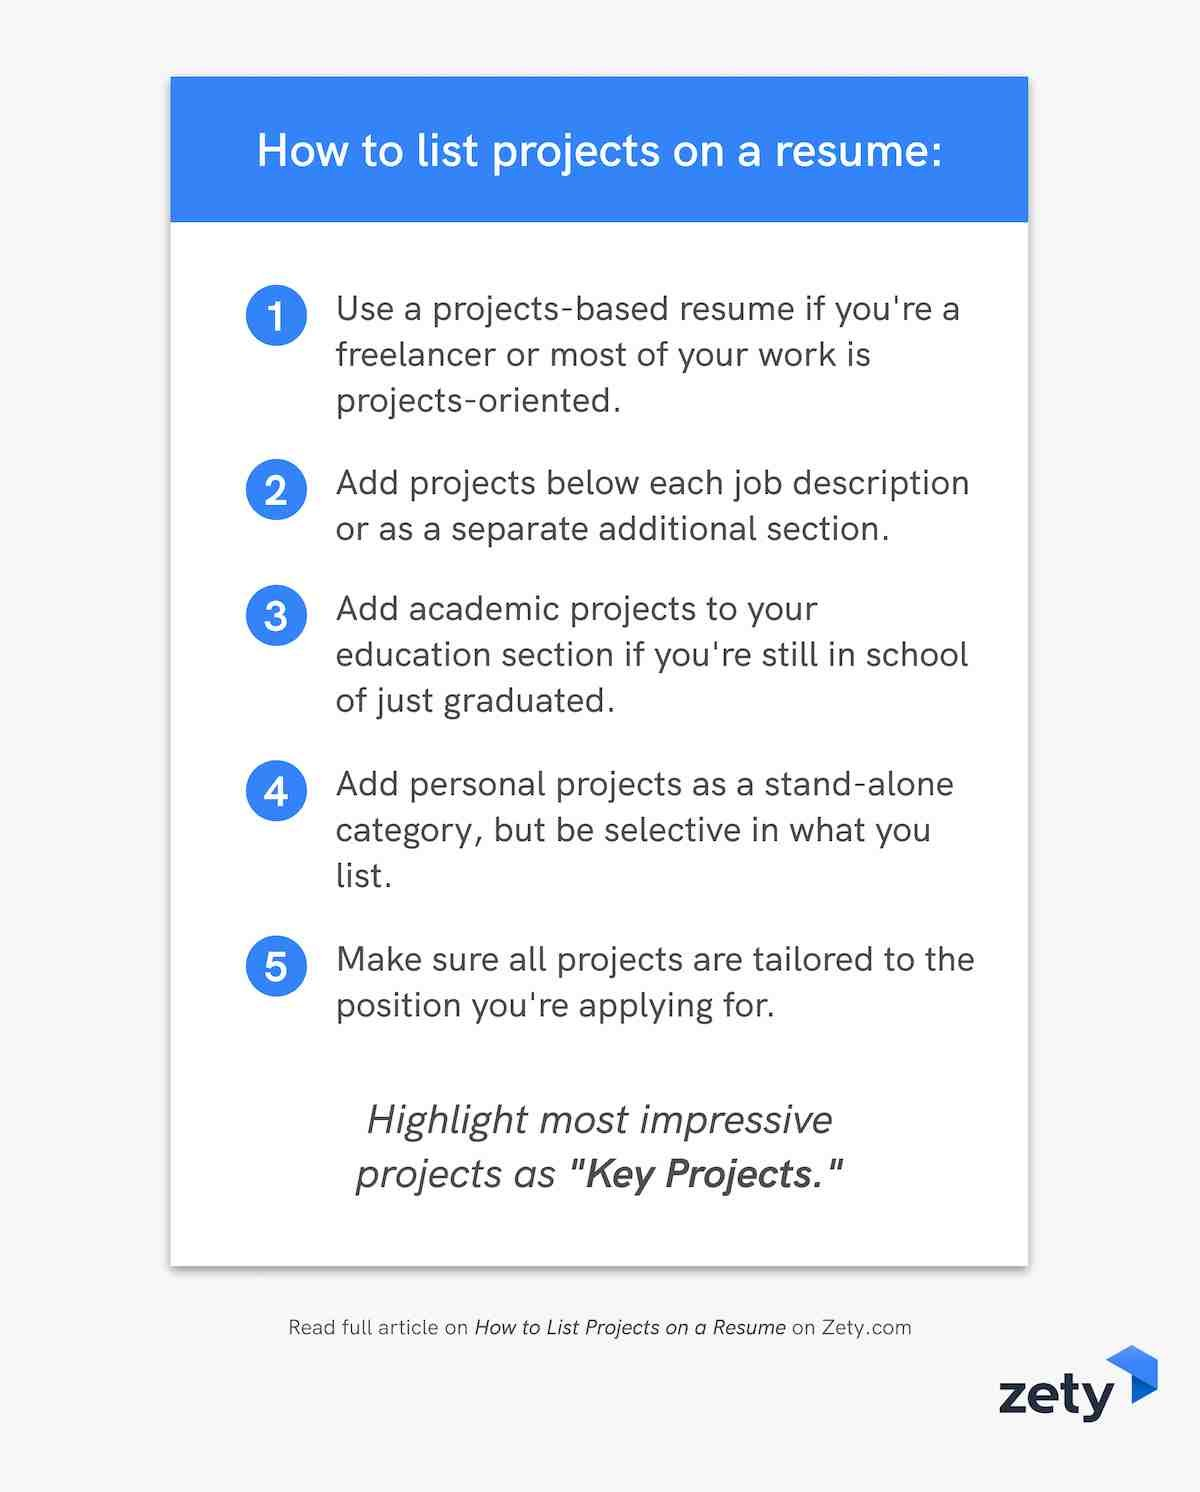 How to list projects on a resume